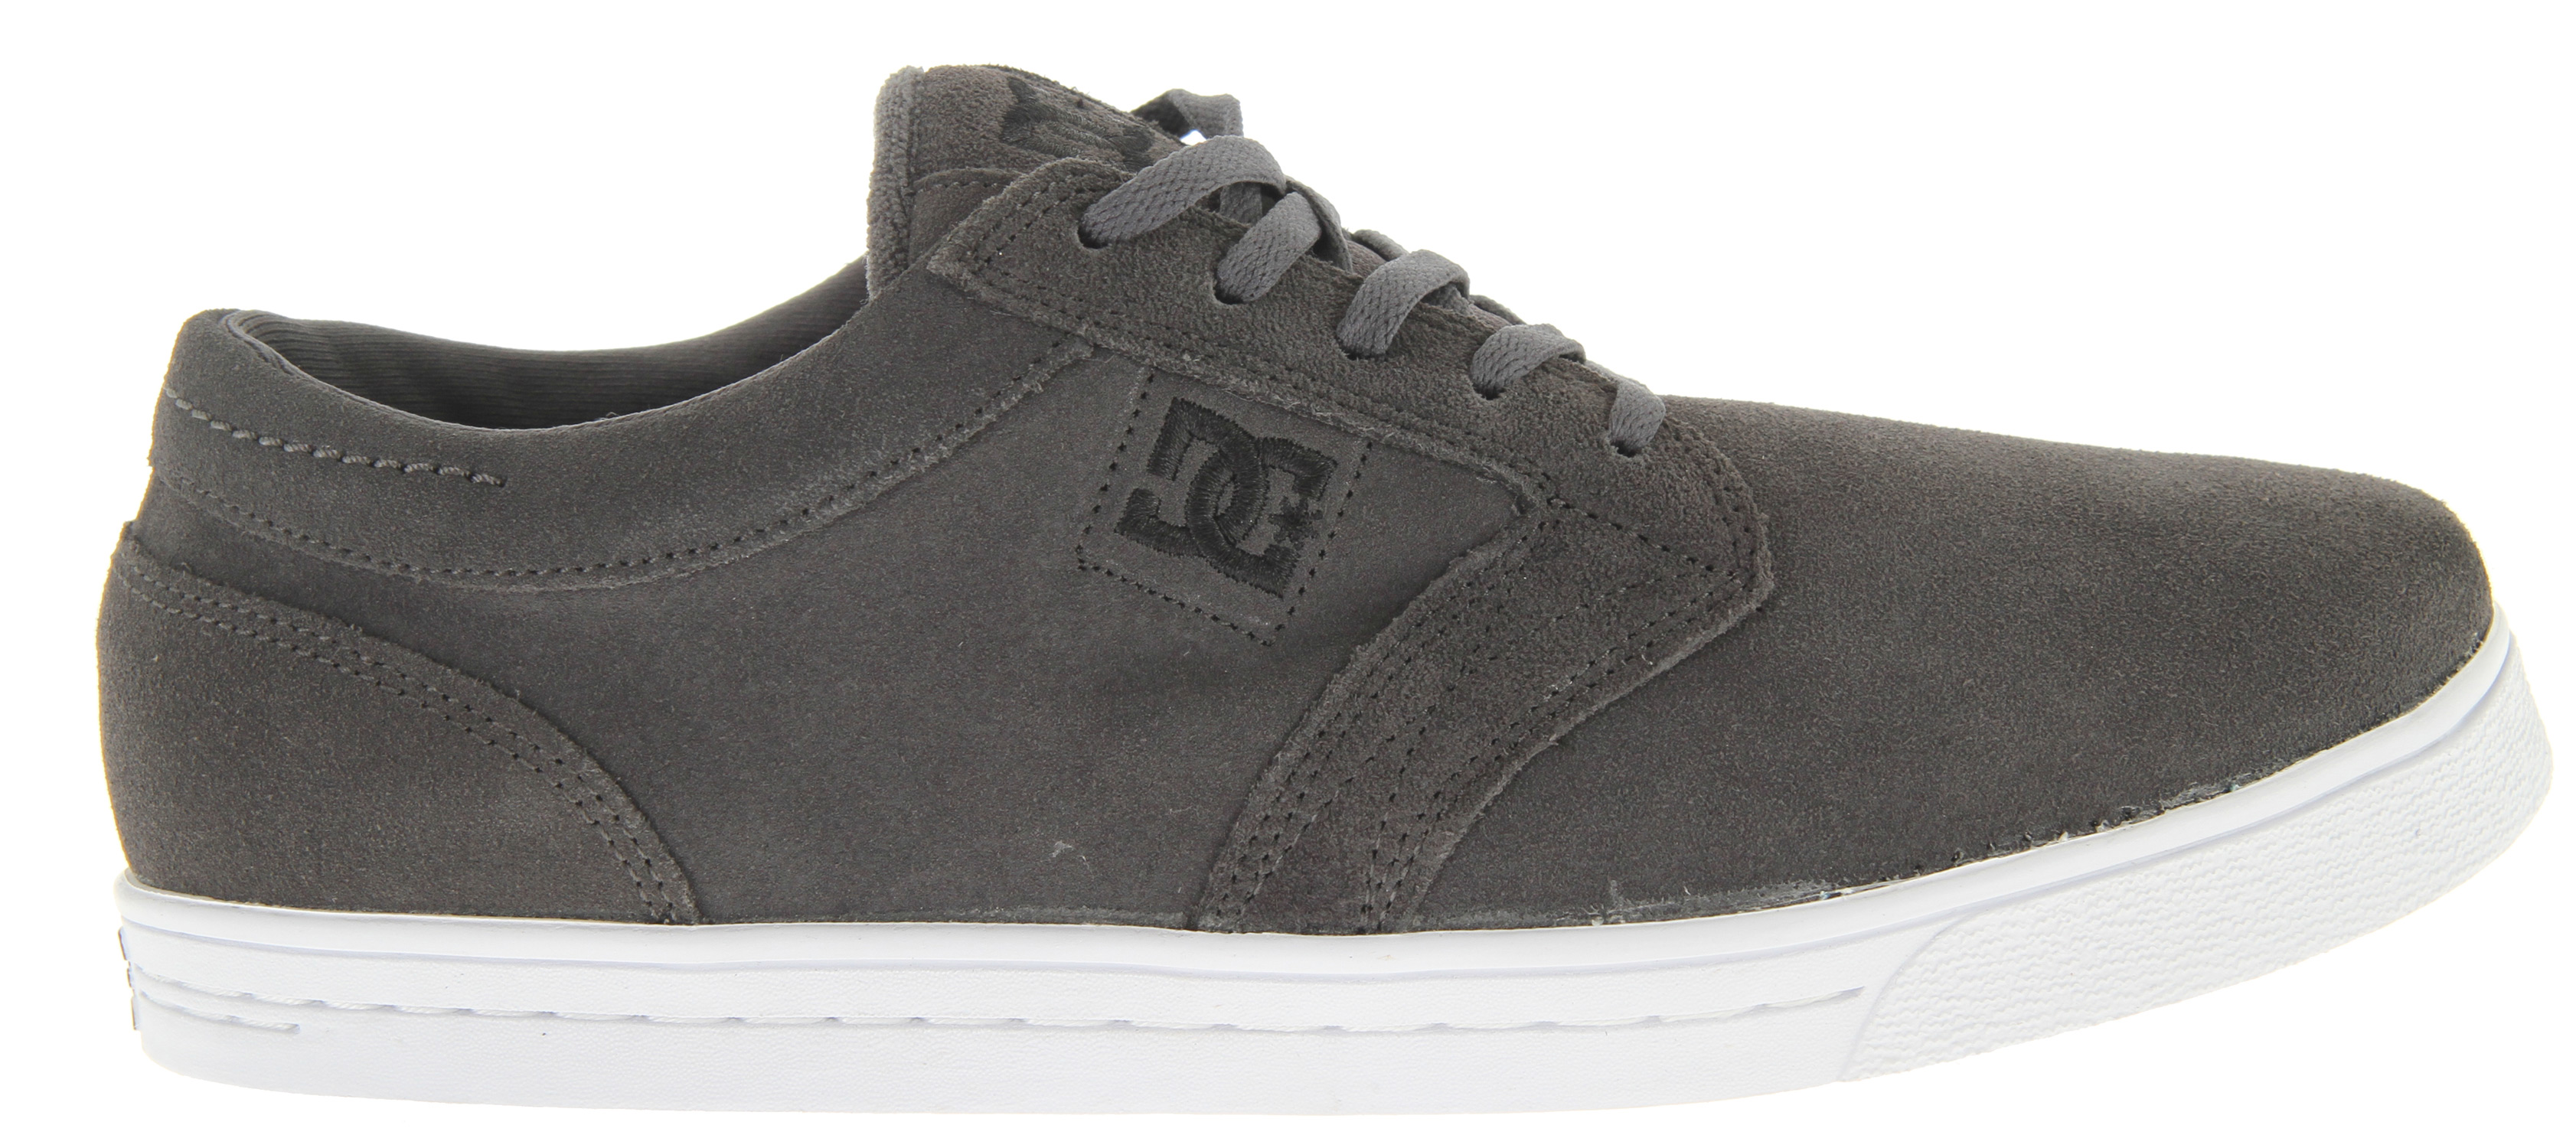 "Skateboard Key Features of the DC Trust Skate Shoes: Silky Suede Upper Foam-Padded Tongue and Collar for added Comfort & Support DC's Performance Cup Sole Construction Abrasion-Resistant Sticky Rubber Outsole with DC's Trademarked ""Pill"" Pattern HEAVY DUTY CANVAS ON UPPER PANEL Extra sandwich mesh tongue with ventilated foam - $41.95"